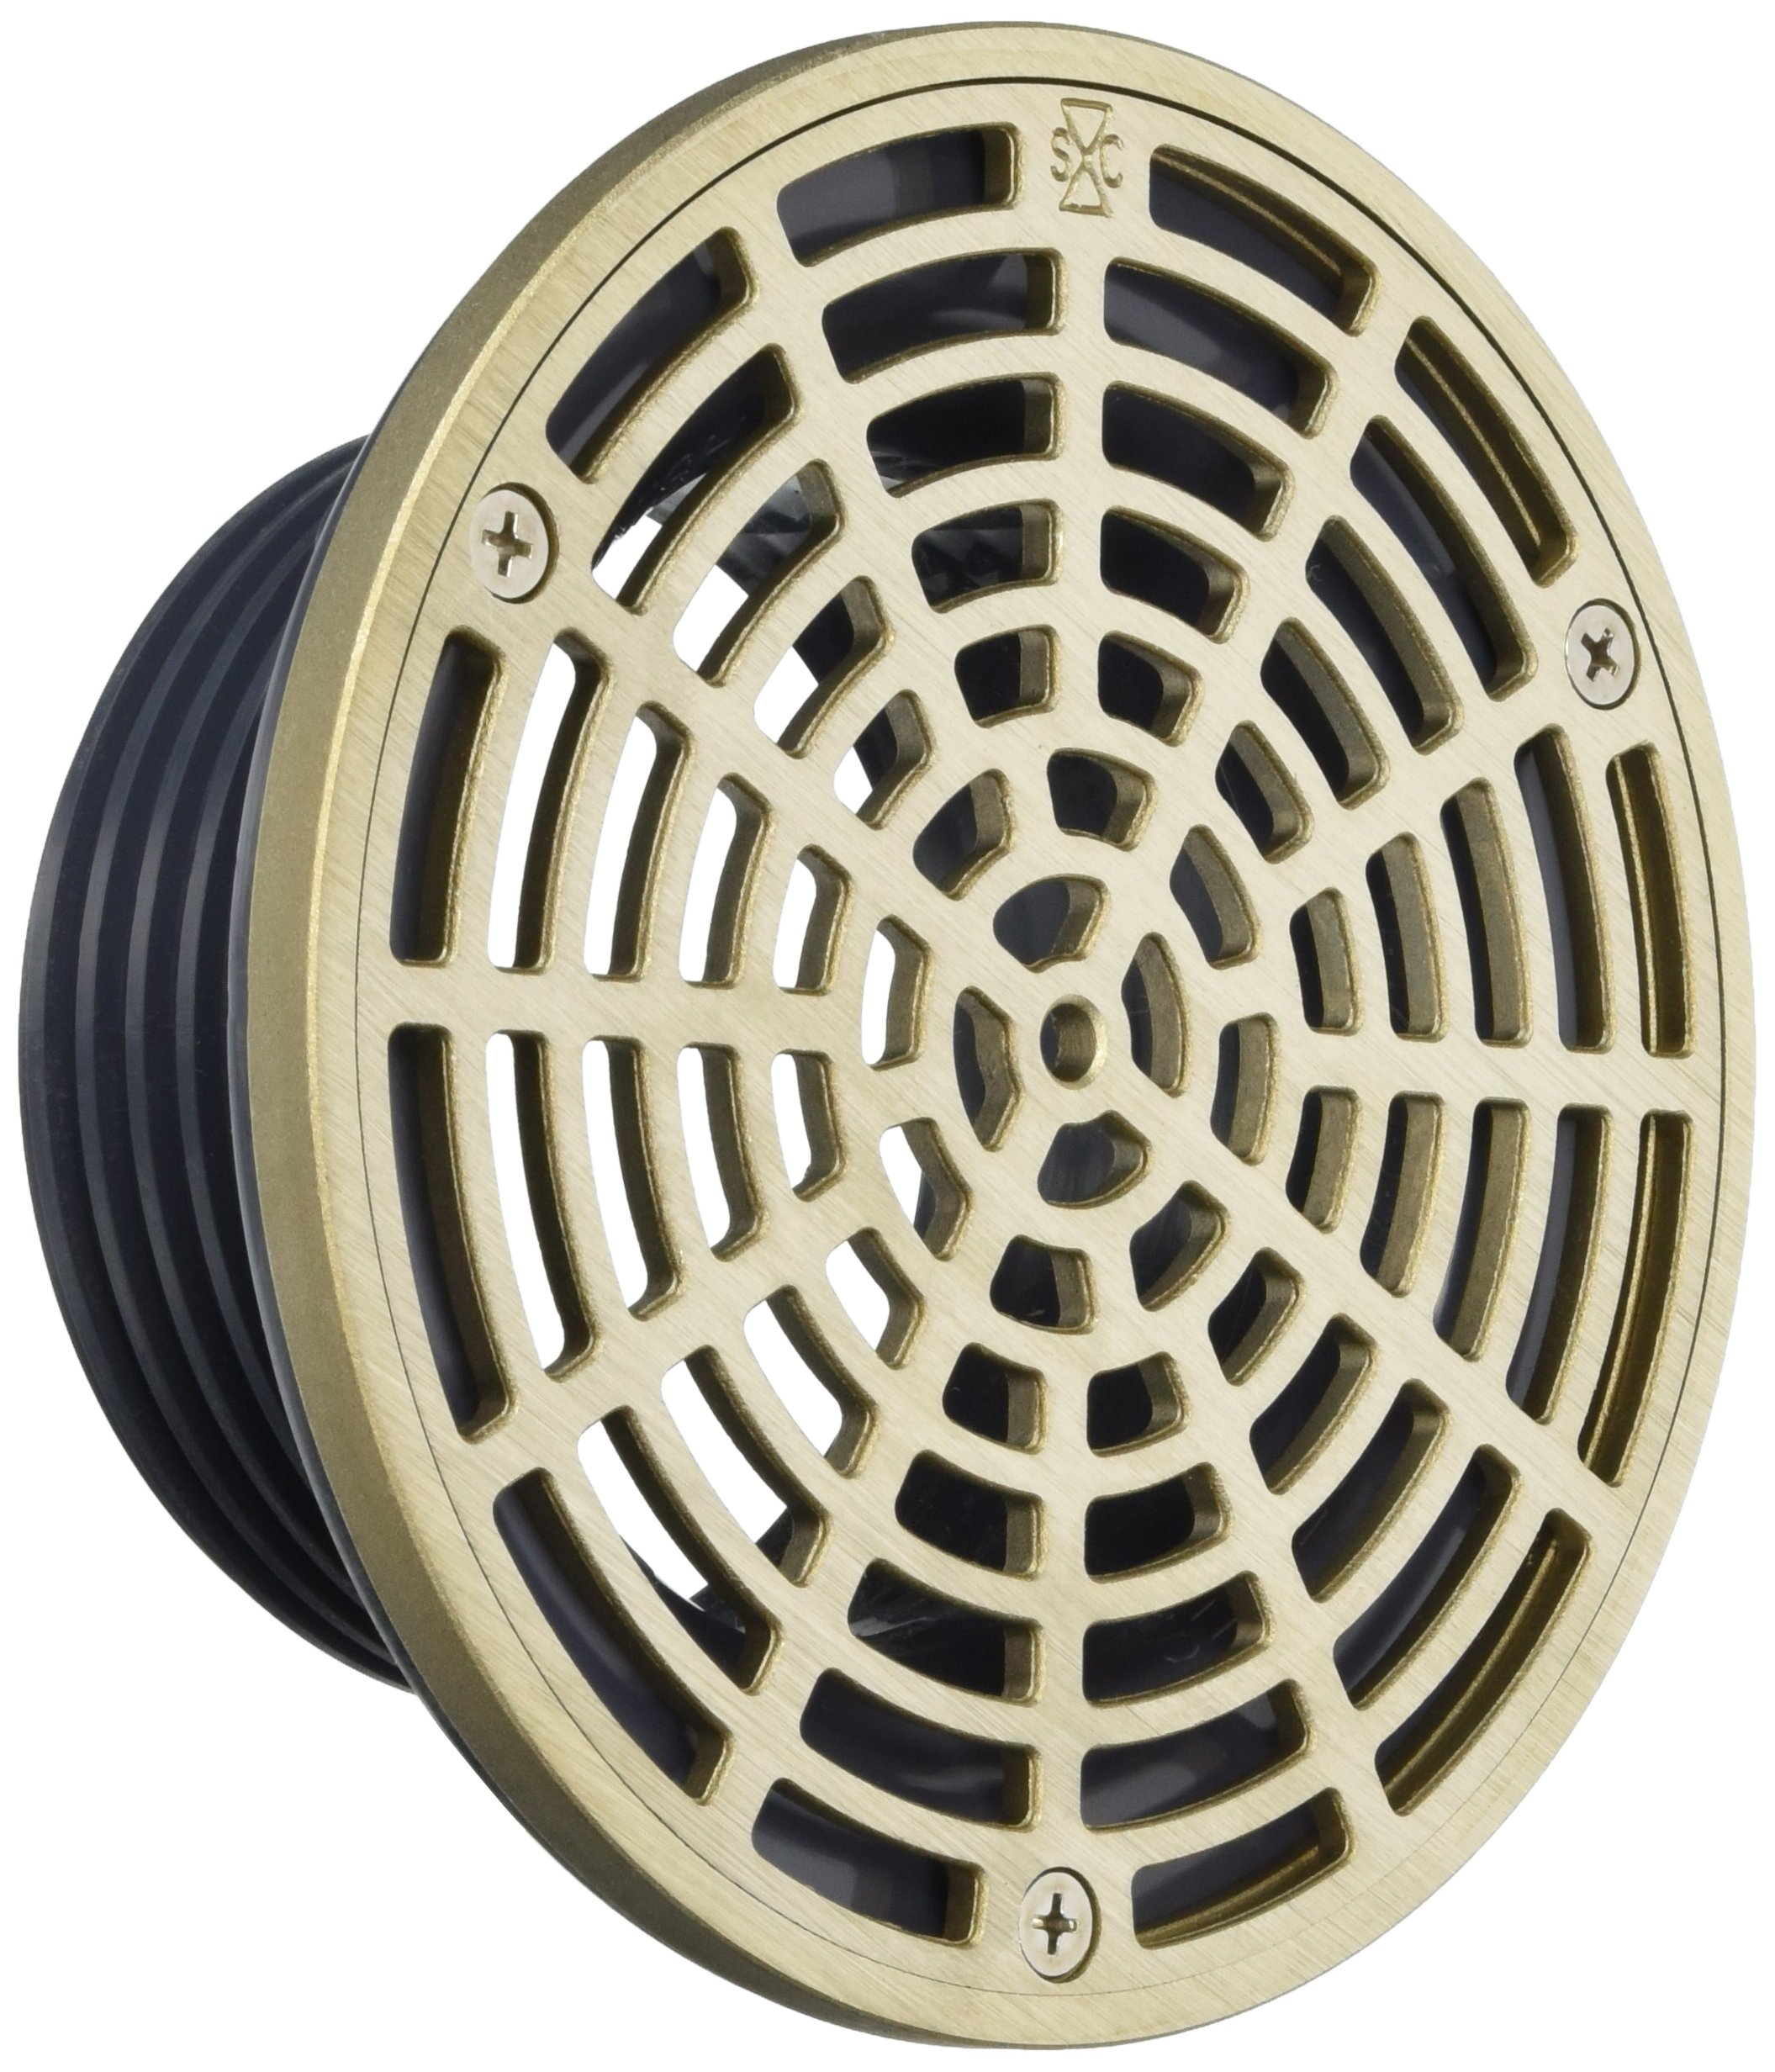 Soux Chief 832-4HNR Finish Line Adjustable Floor Drain Schlage 40 Hub Connection, 6 1/2''